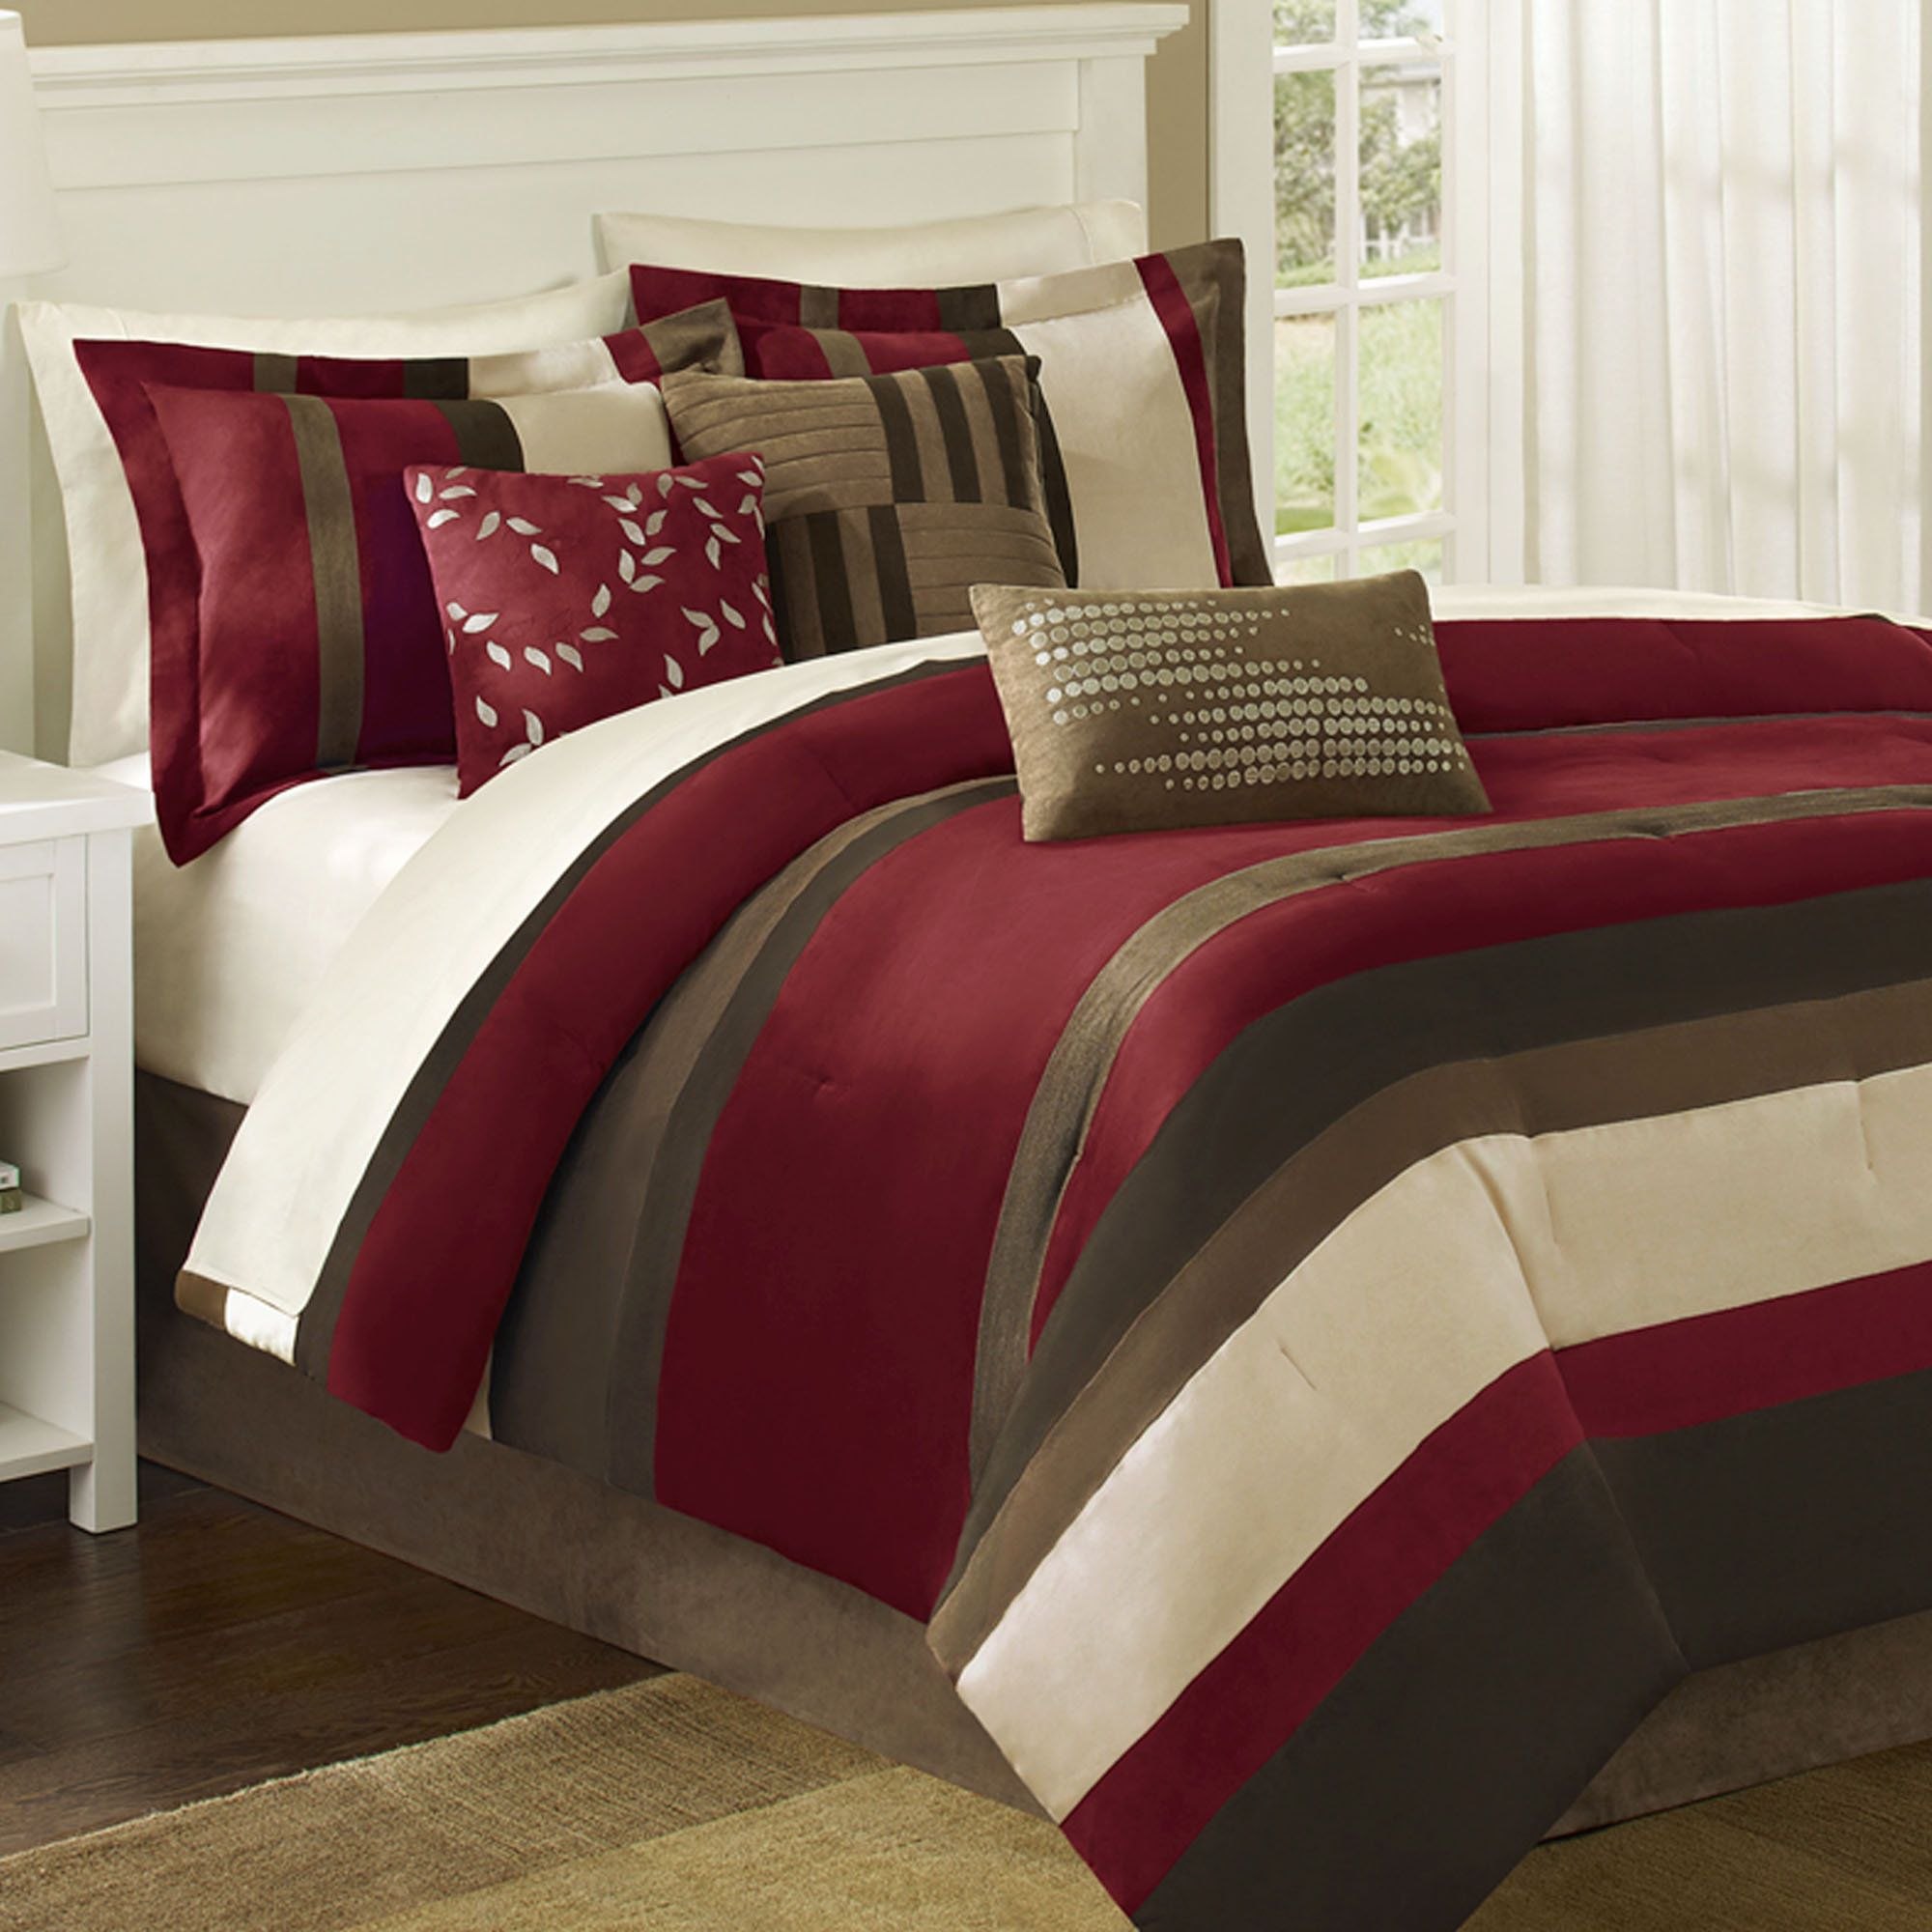 checkerboard teenage throw size in queen curved home fascinating remodel comfortable ideas make bedroom comforter sets pillow combined bedrooms pattern design a attractive distinguishing comforters bedding decor your teen for black girls bed plaid and windows beautiful red extraordinary with near set